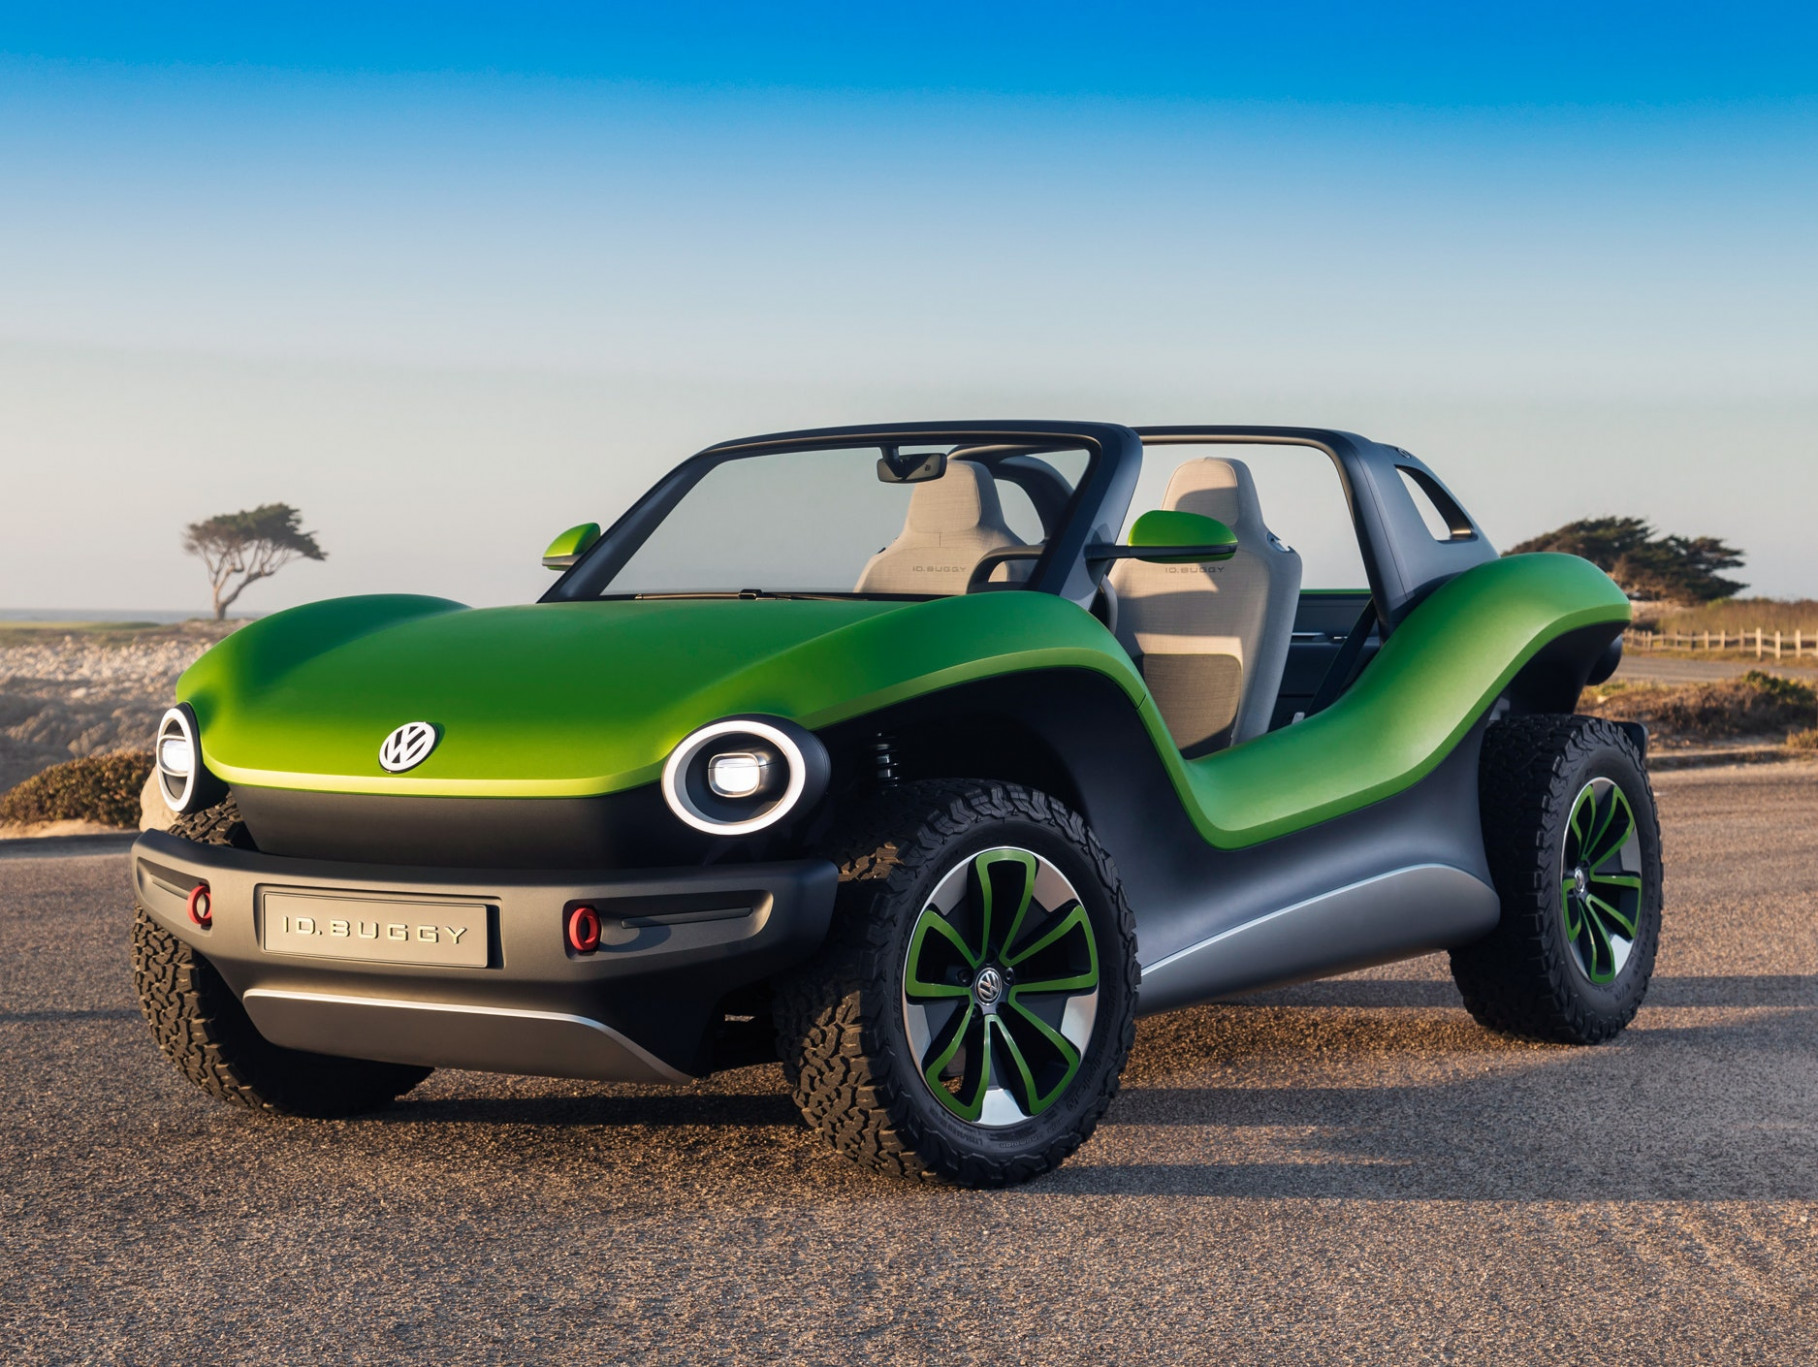 VW's ID Buggy Is an Electric Dune Dominator | WIRED